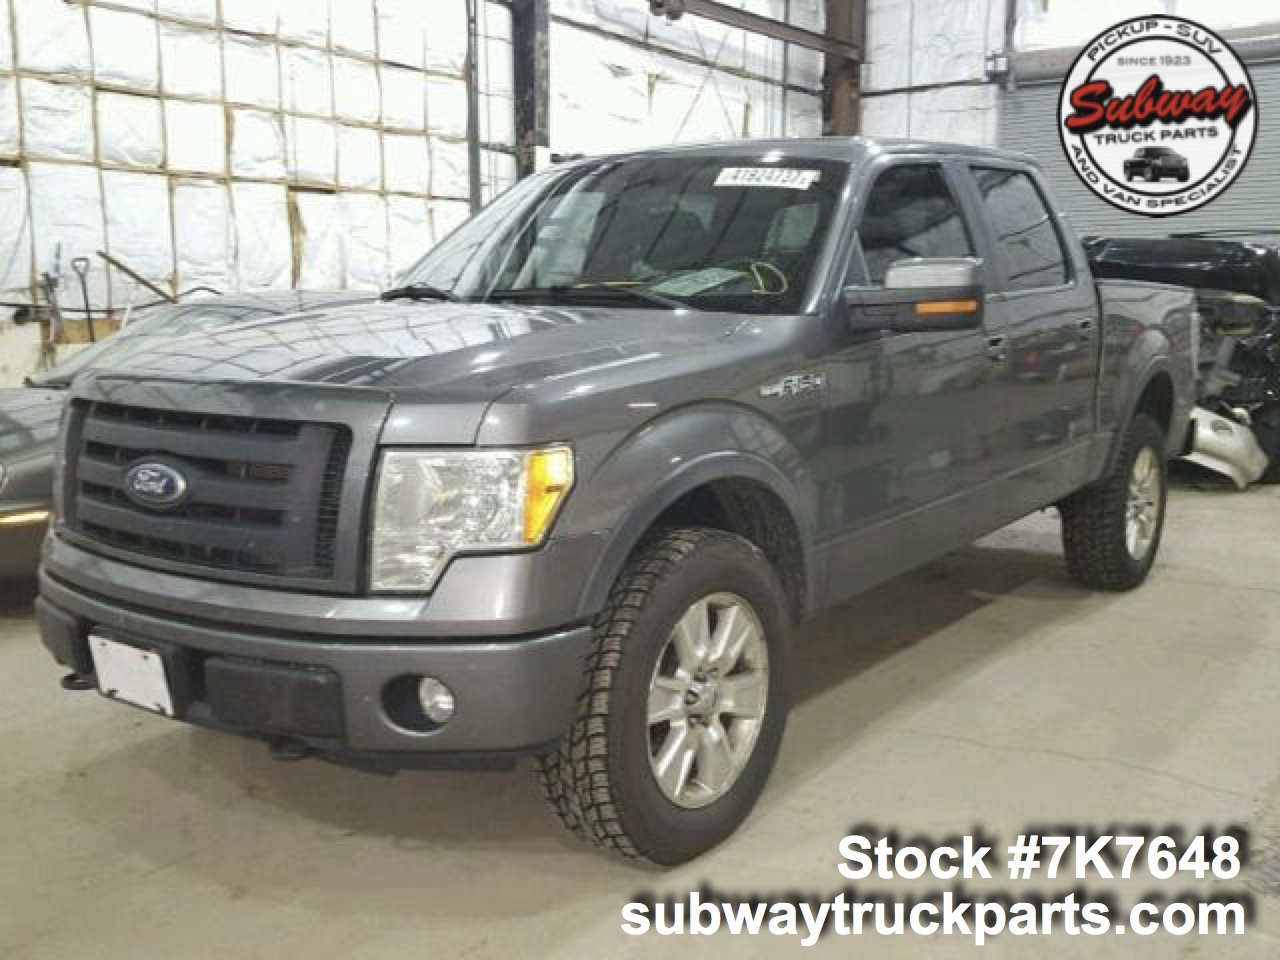 used 2010 ford f150 5 4l fx4 4x4 parts sacramento subway truck parts. Black Bedroom Furniture Sets. Home Design Ideas